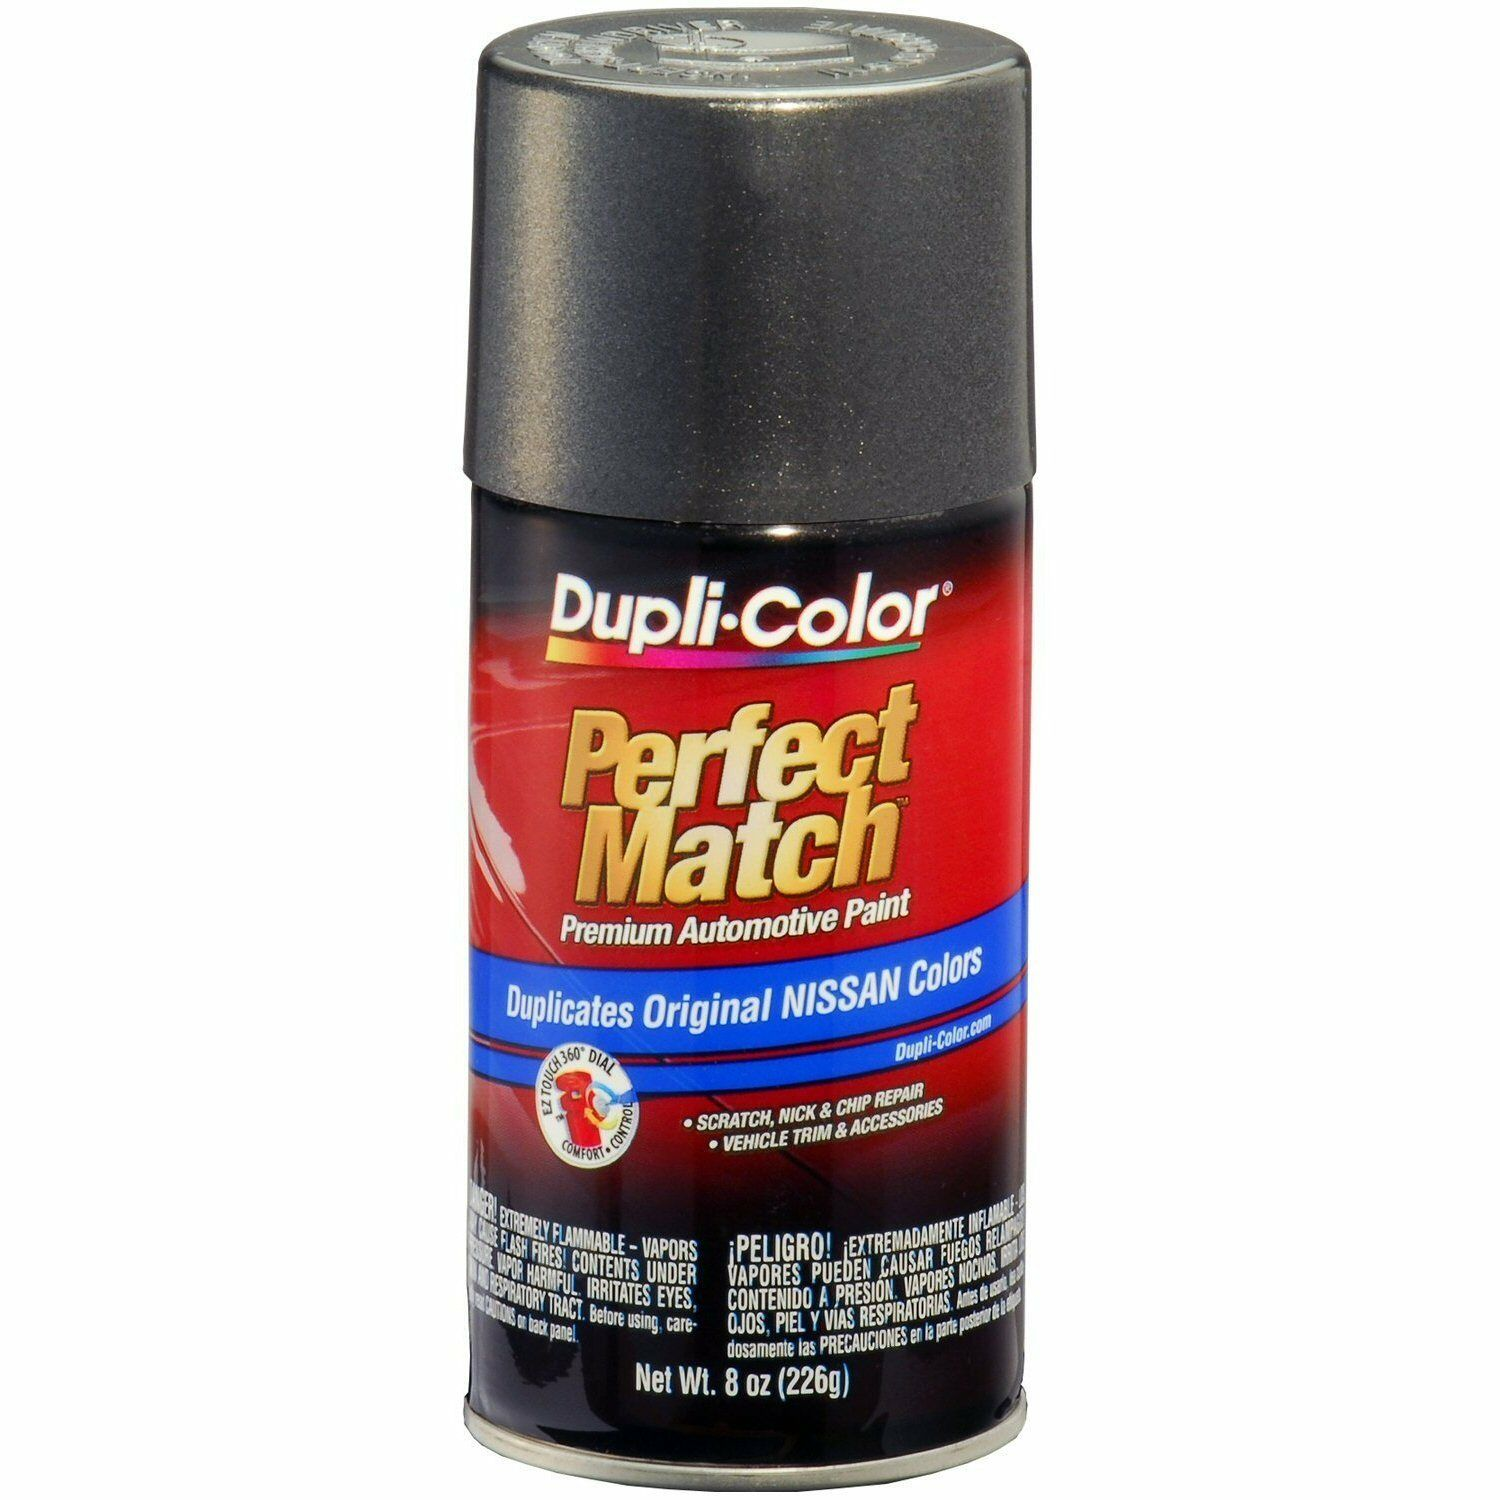 Order Perfect Match Spray Paint Genuine High-Quality American Made Automotive Touch Up Paint, Automotive Spray Paint, Primers & clear coat from Era paints.